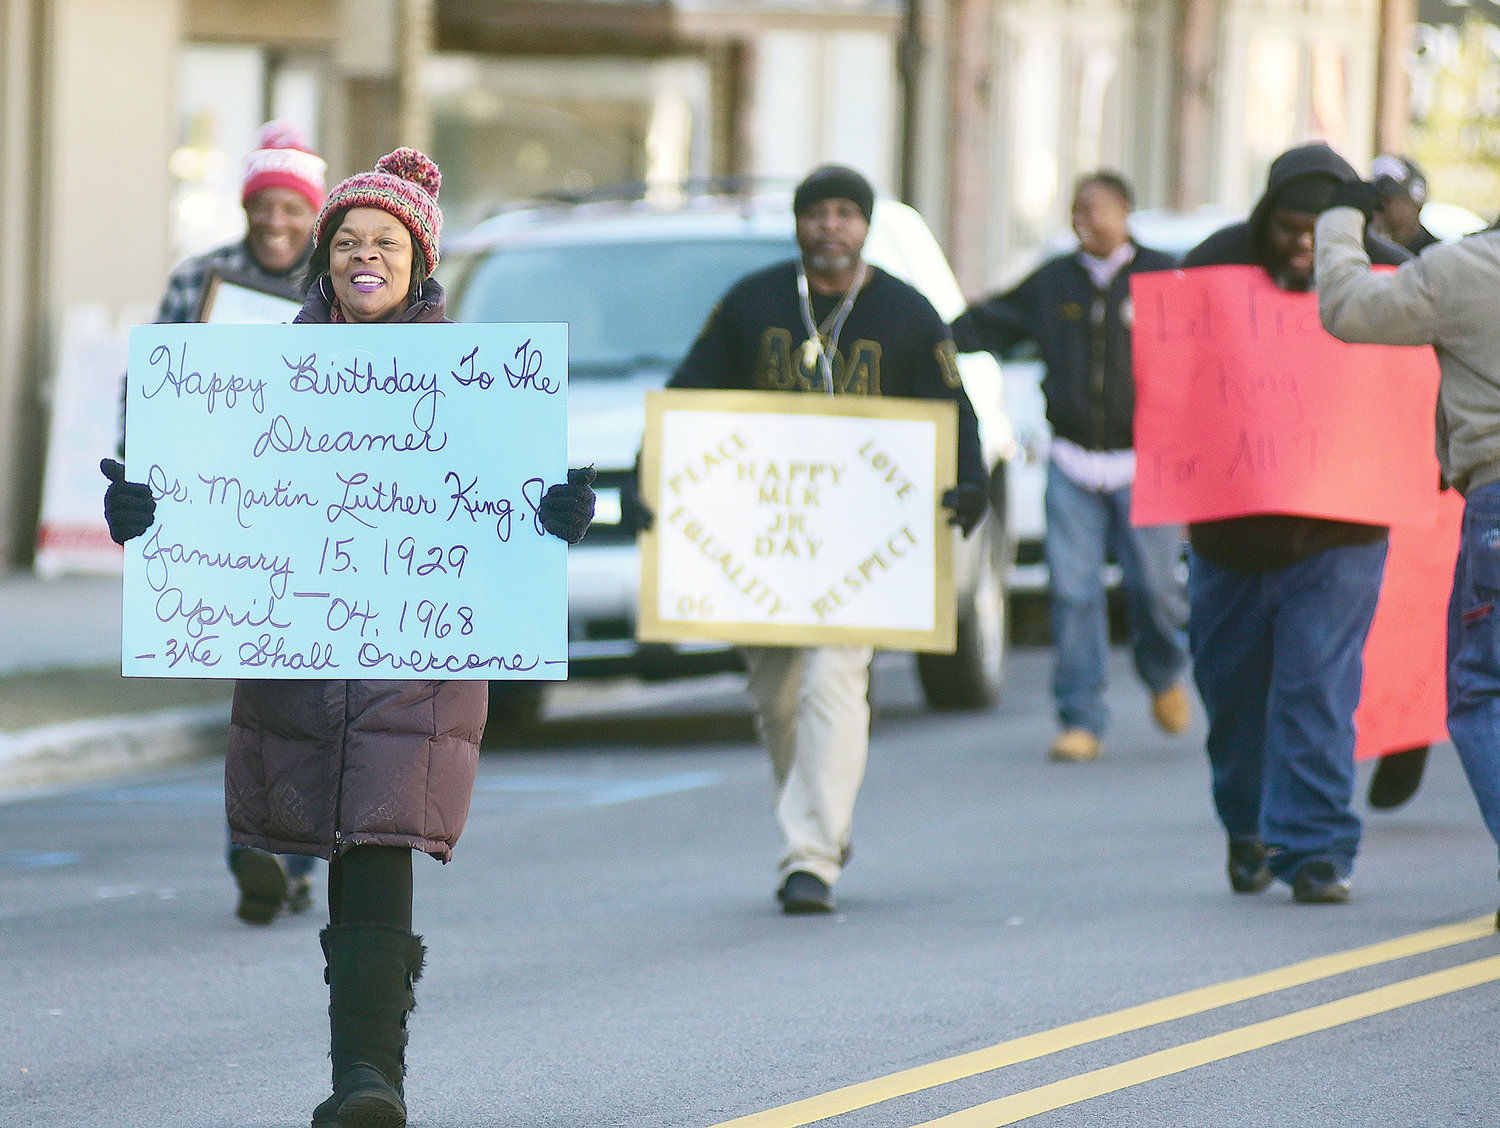 Cold temperatures led to a smaller than normal crowd for Monday's march through downtown Jasper to honor the late Dr. Martin Luther King Jr. The march, which began at A.P. Howell Park and ended at the Percy Goode Community Center, included a brief stop on the downtown square, where event participants joined in a prayer for the memory of King and what his work meant to the civil rights movement in the United States. A program was held at the Percy Goode Community Center following the march and included all ages.